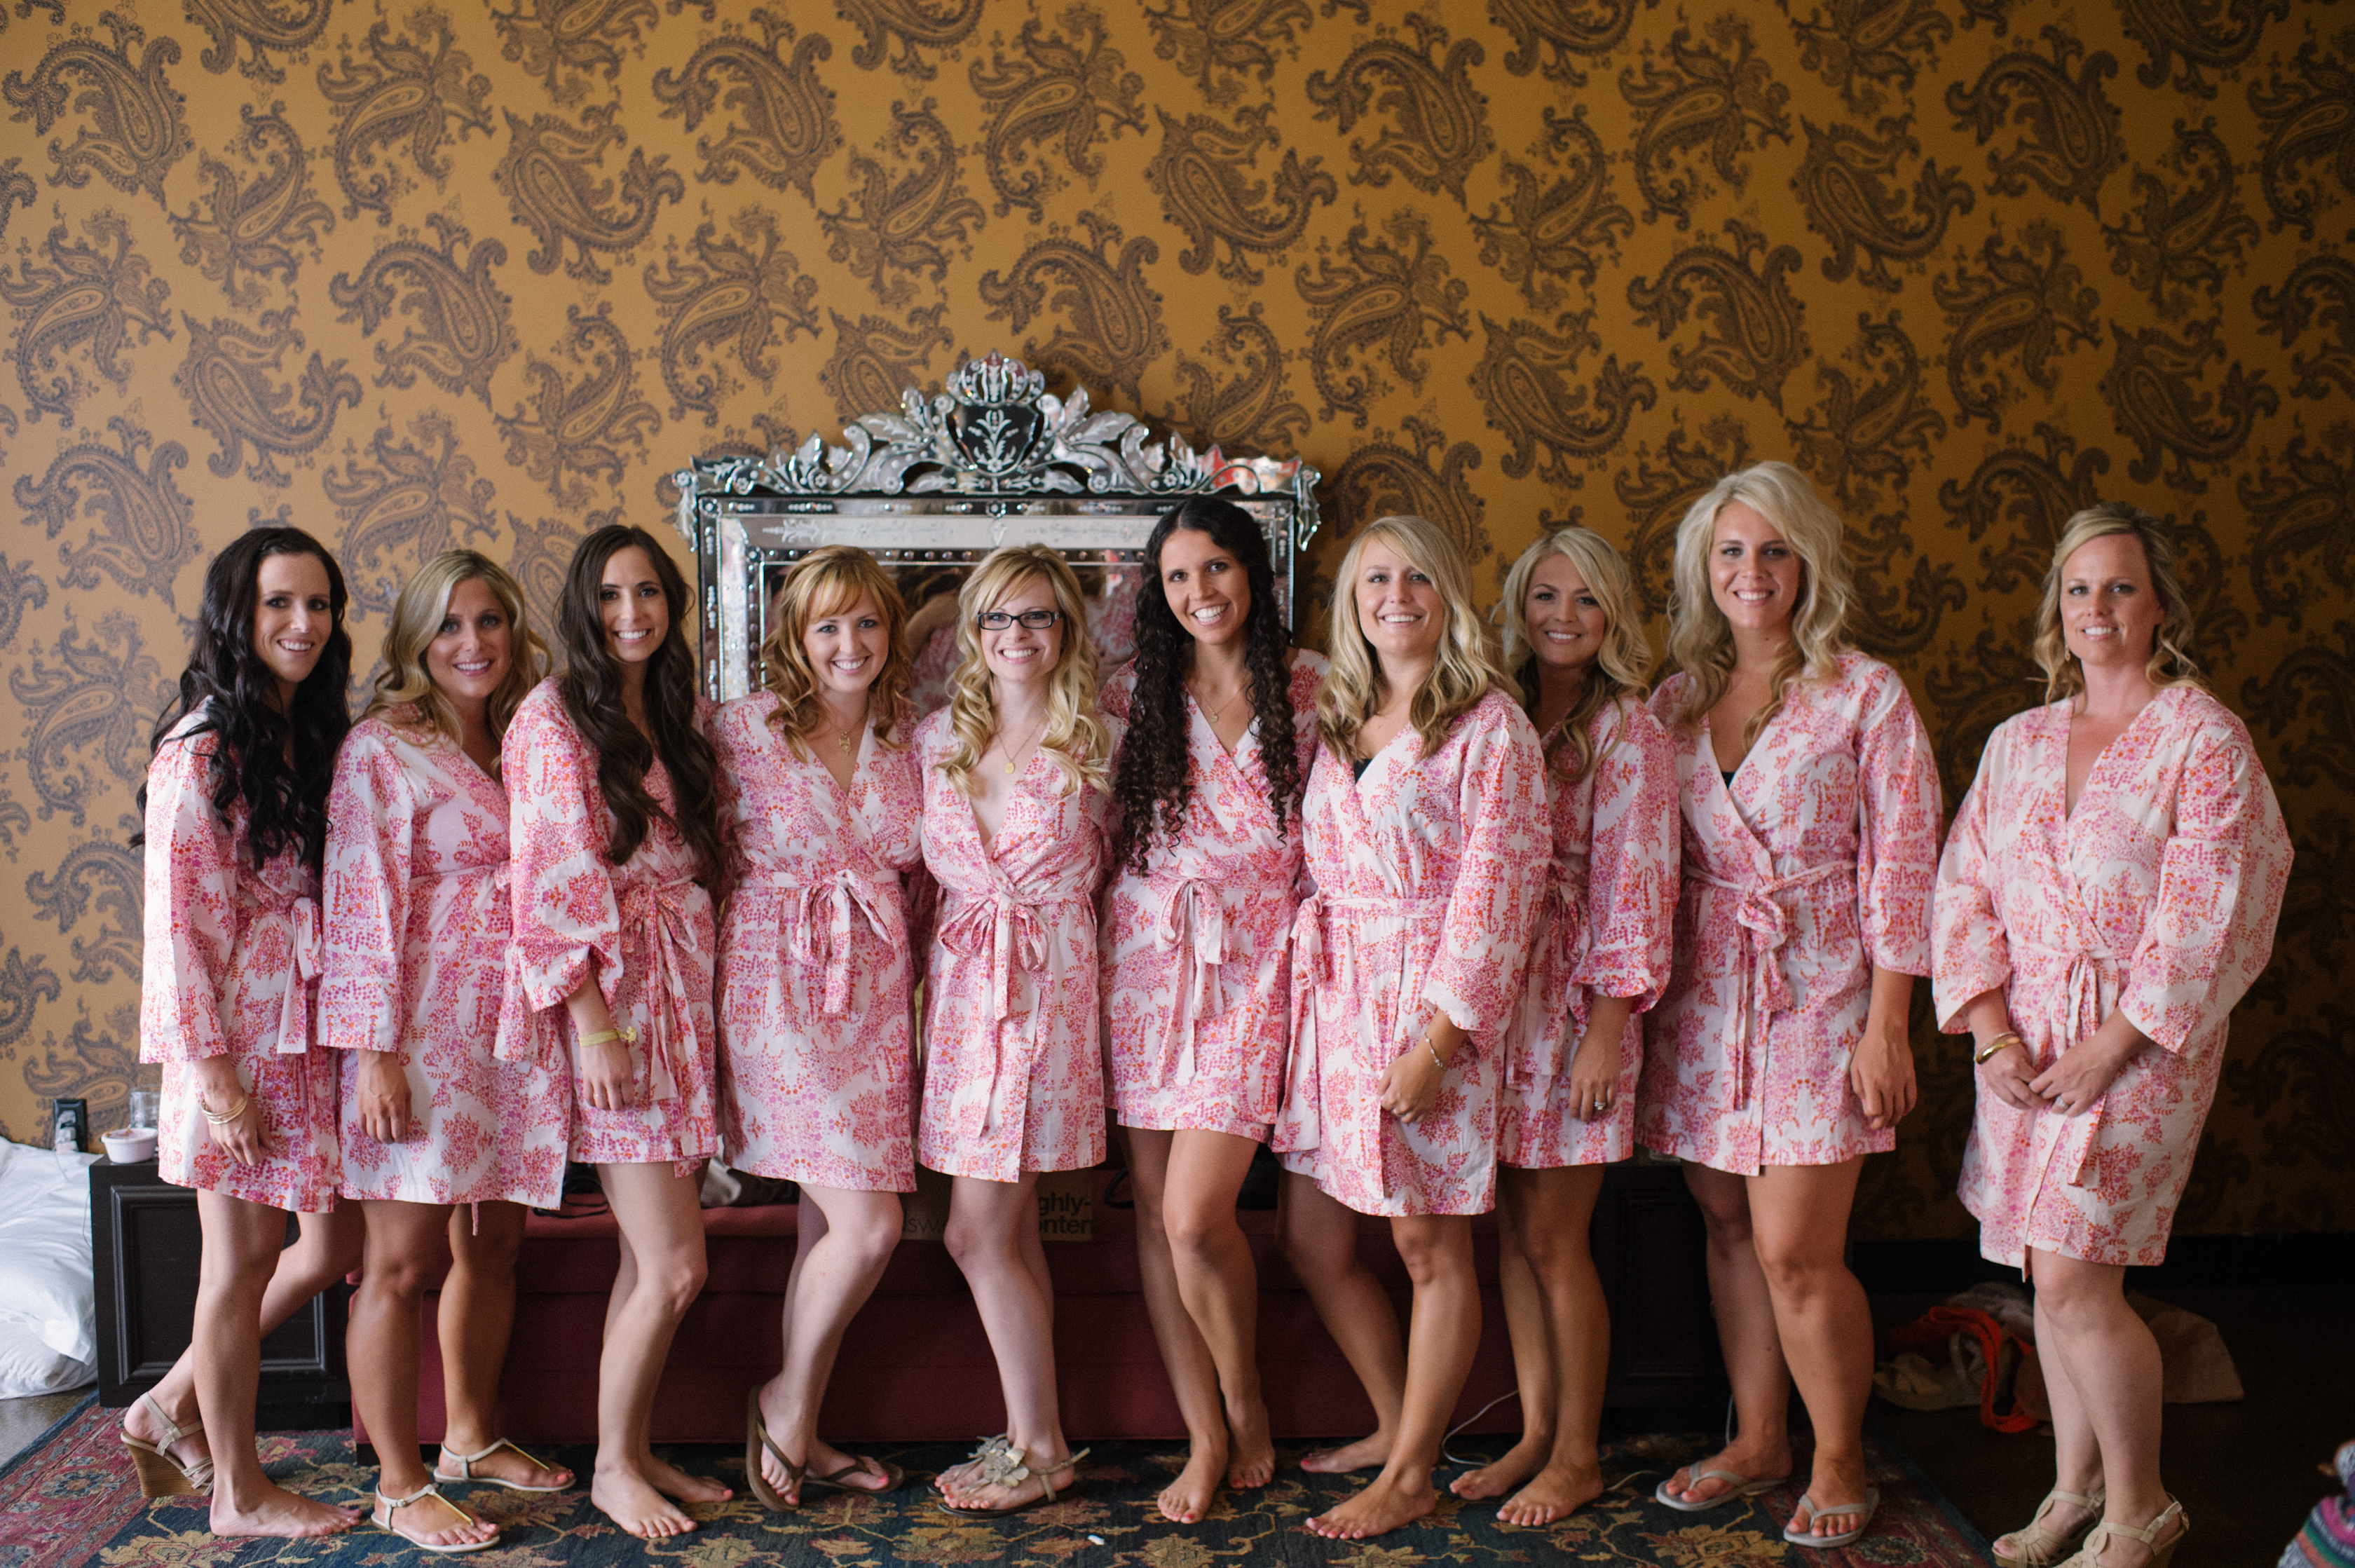 The bridal party in matching robes